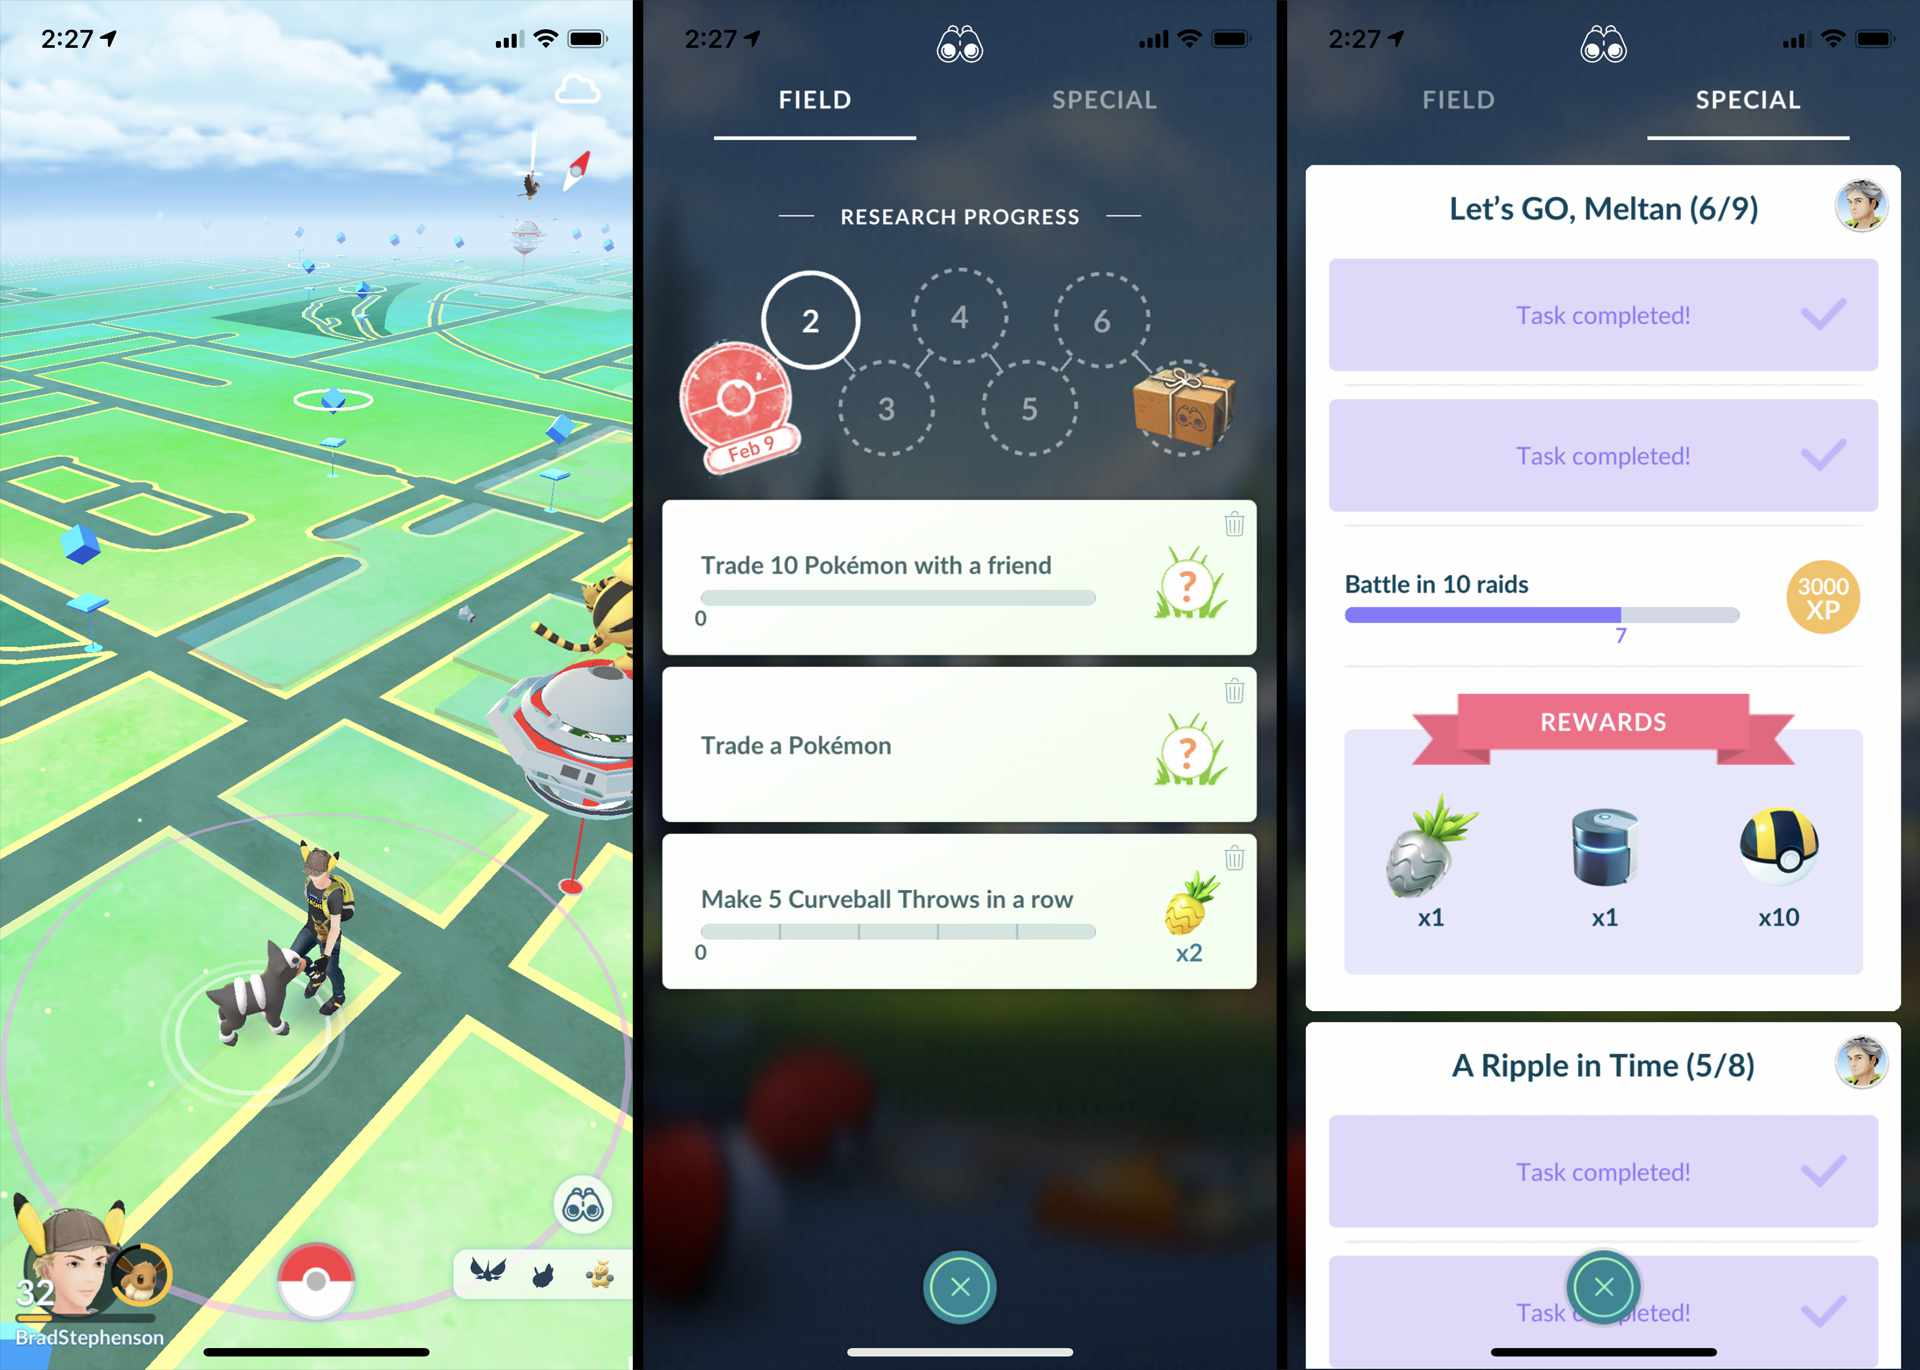 How to Get Meltan in Pokemon Go {Step By Step Guide}